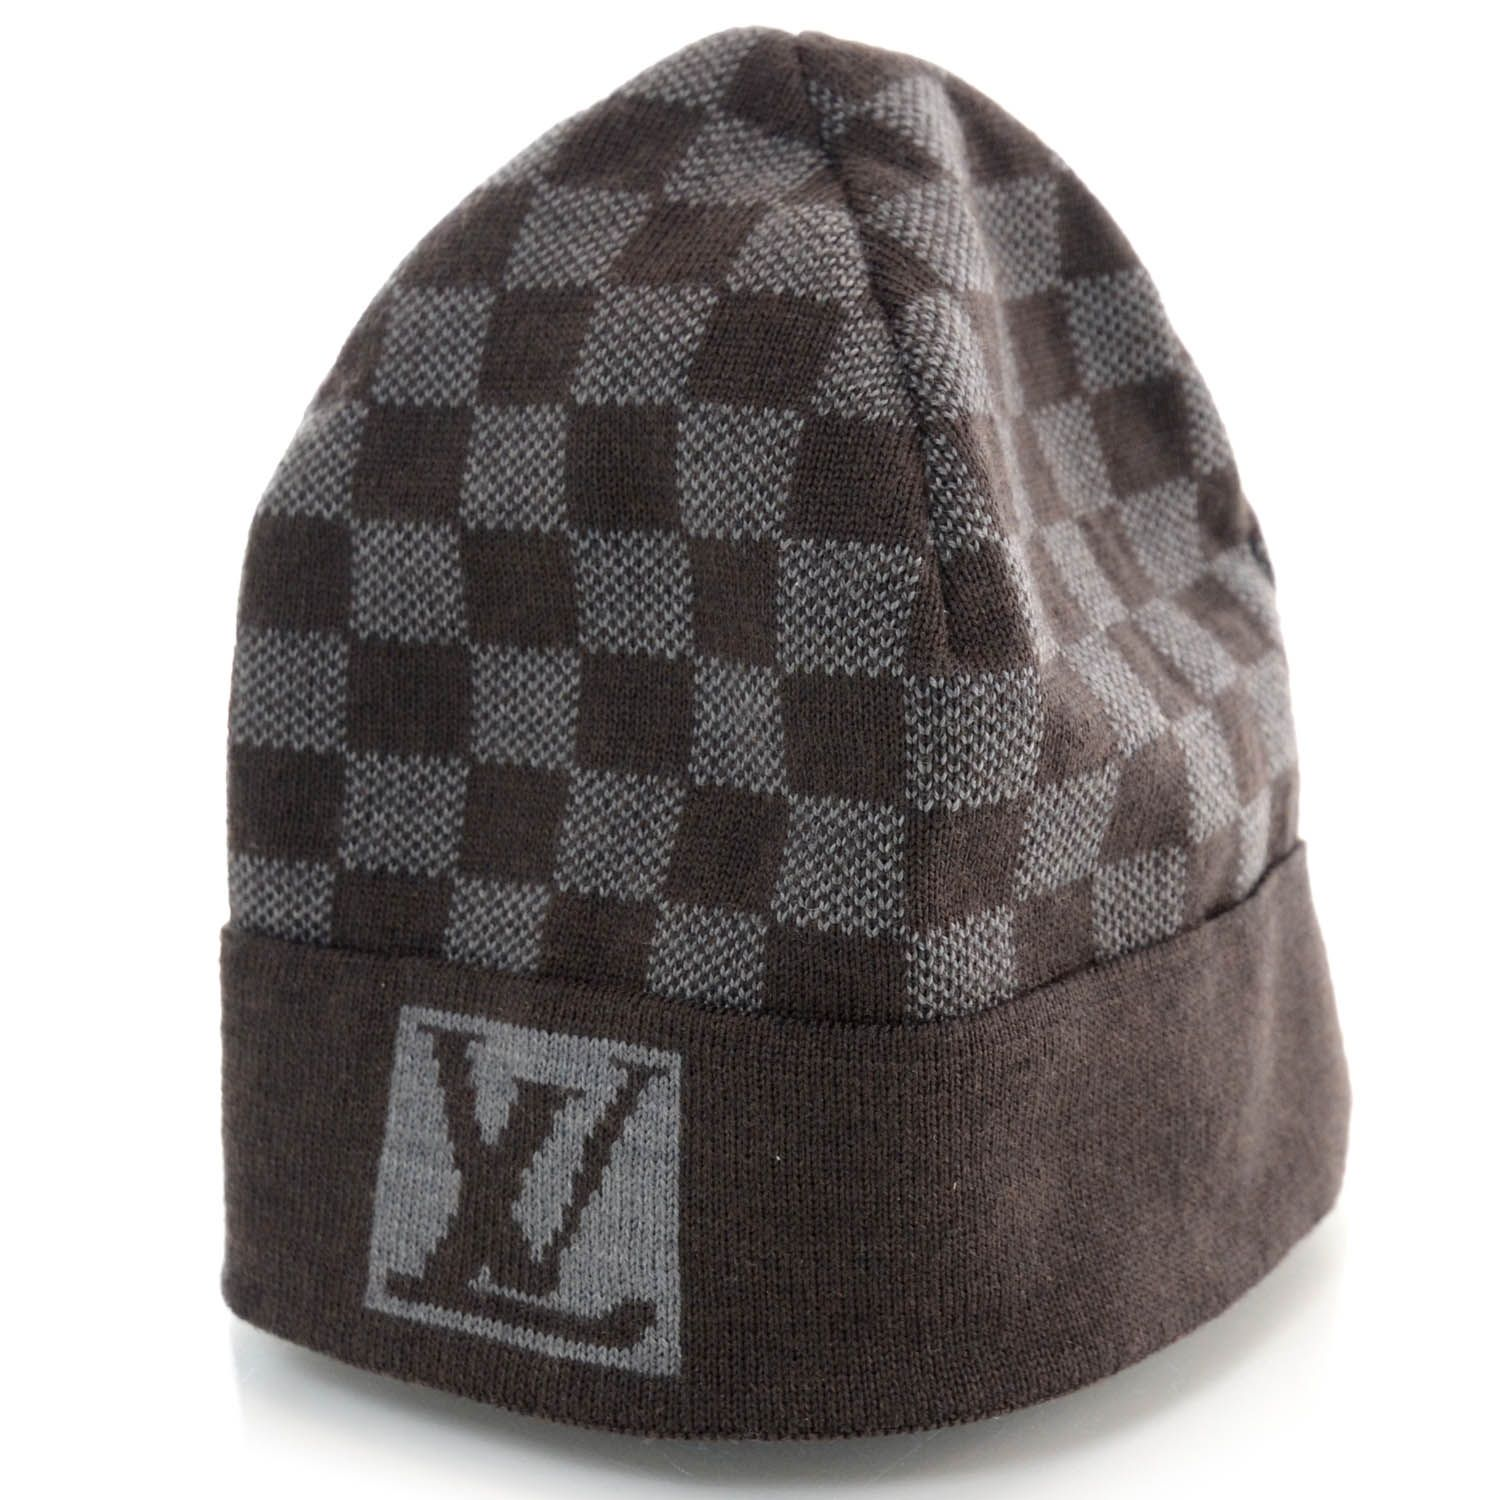 474bd19bdcab9 LOUIS VUITTON Wool Bonnet Petit Damier Beanie Hat | Head Wear in ...